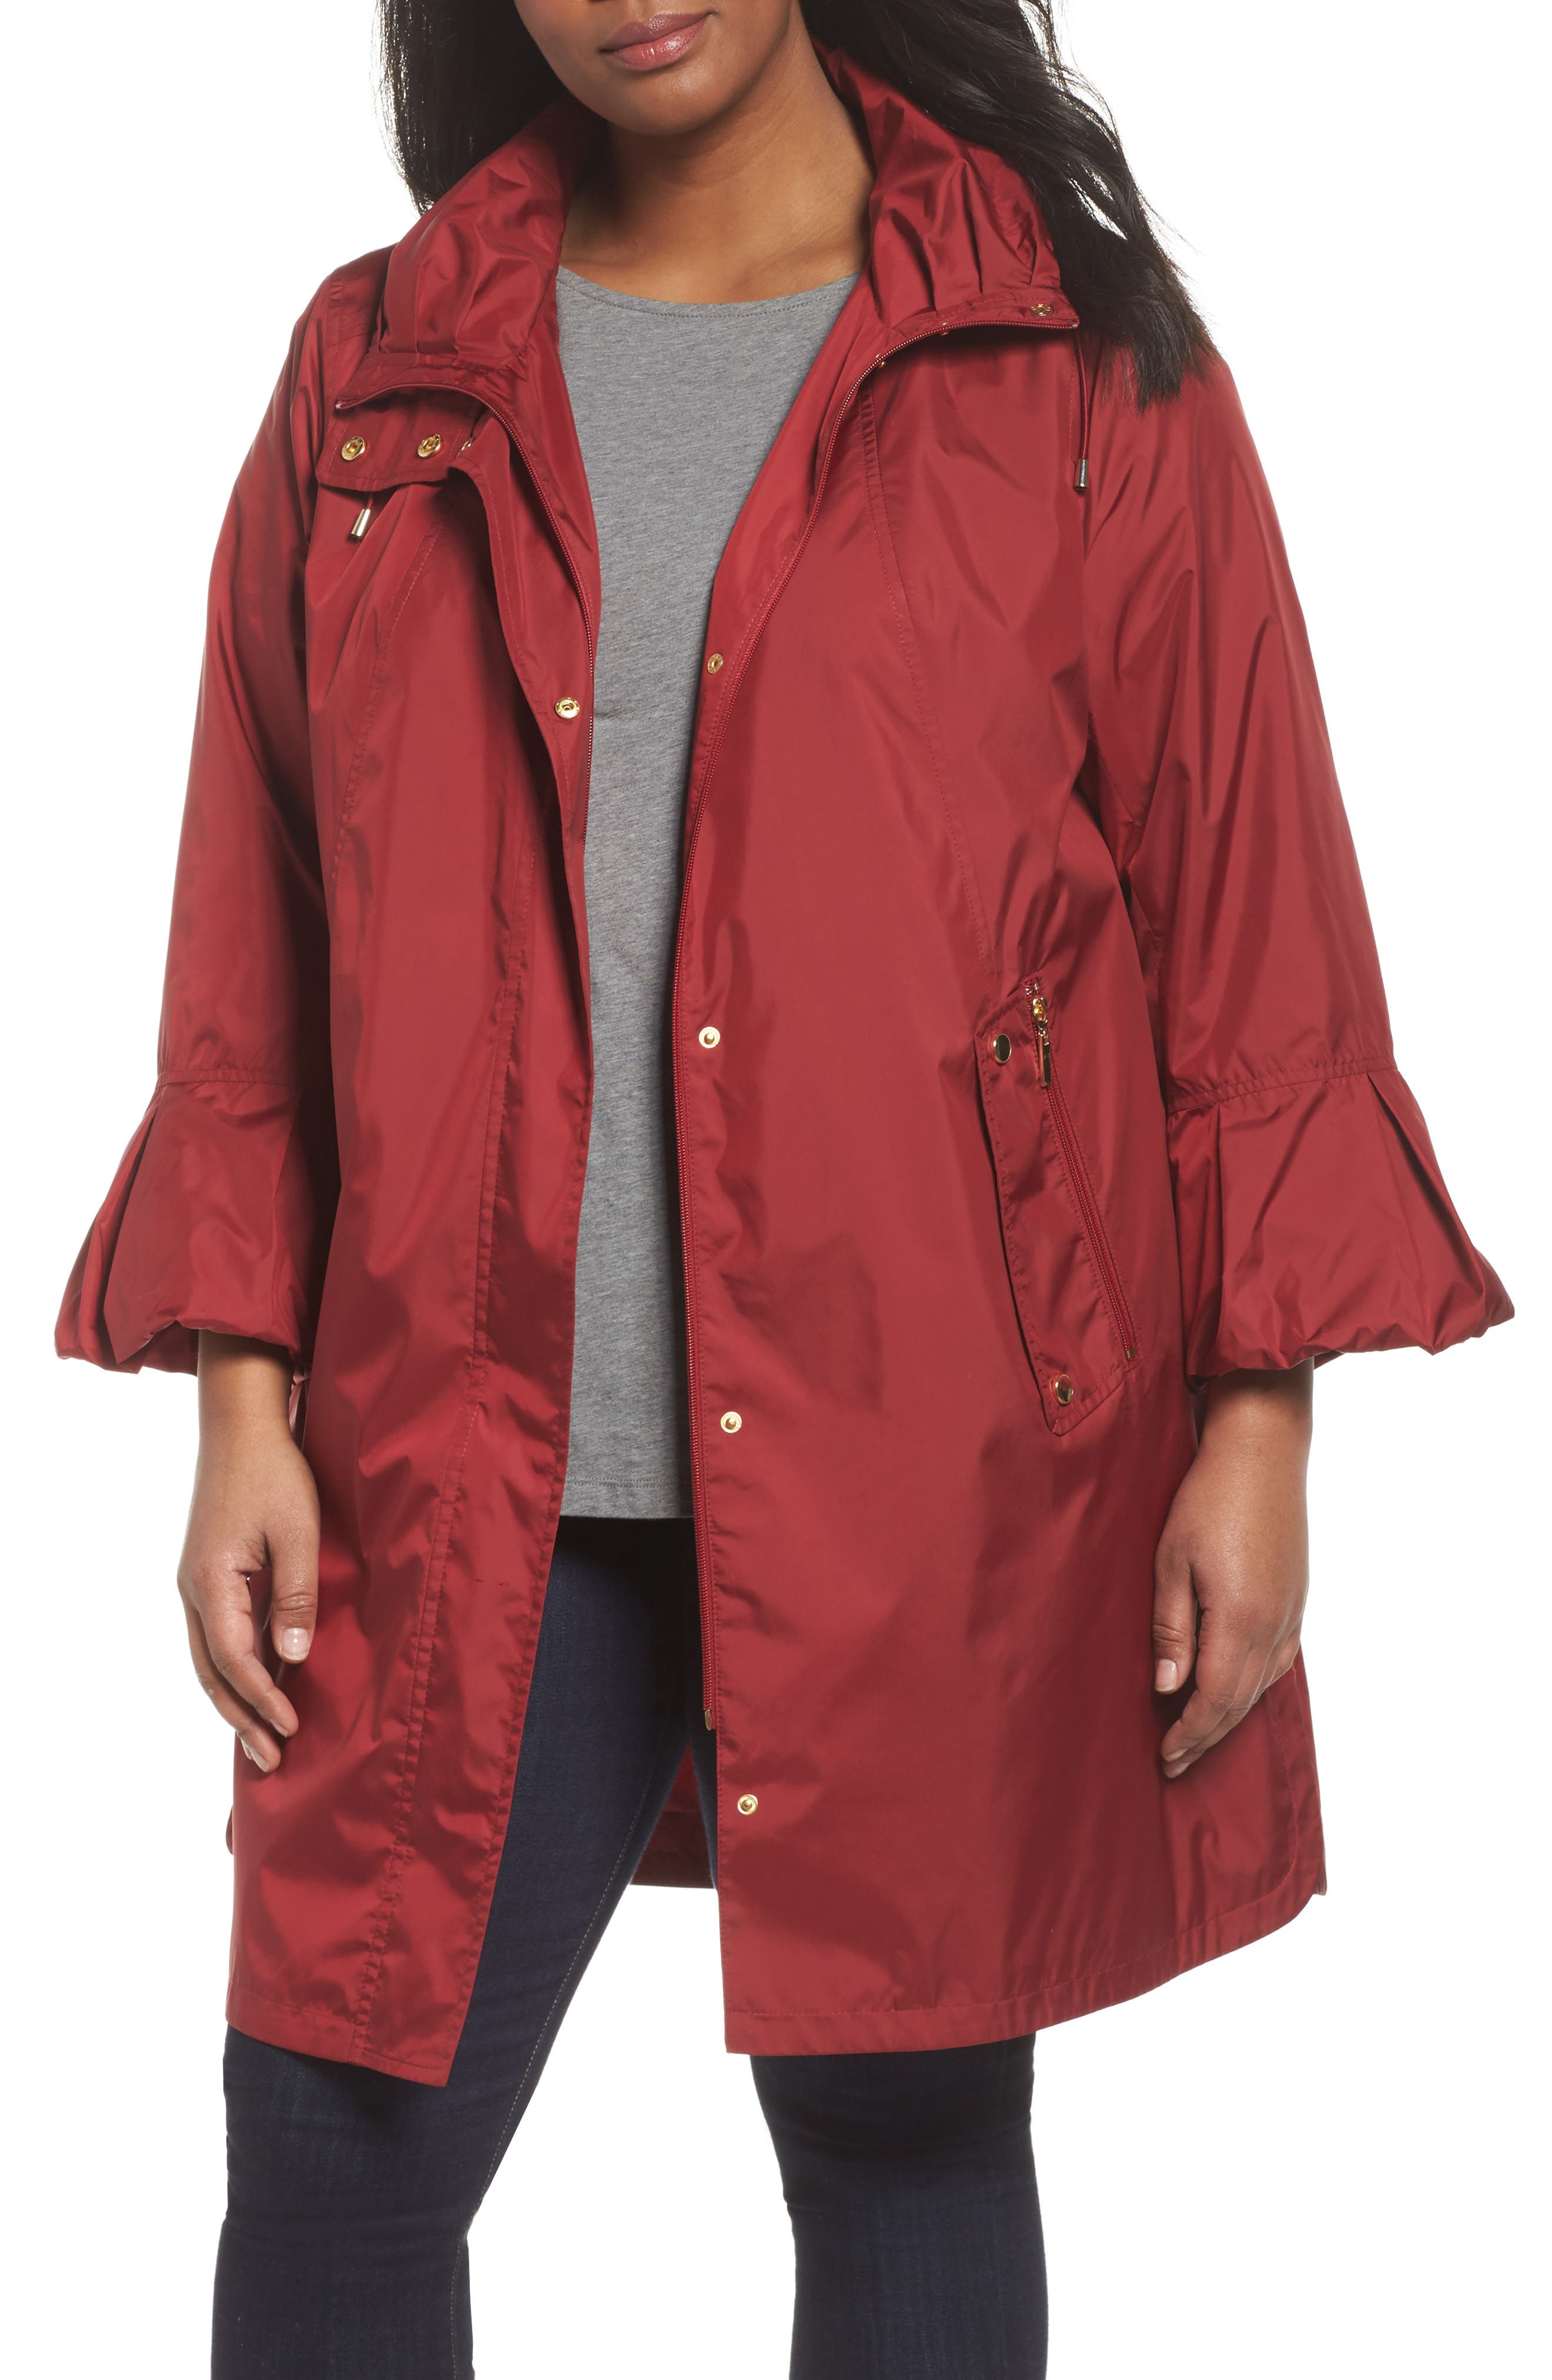 Main Image - Gallery Flare Sleeve Packable Swing Jacket (Plus Size)